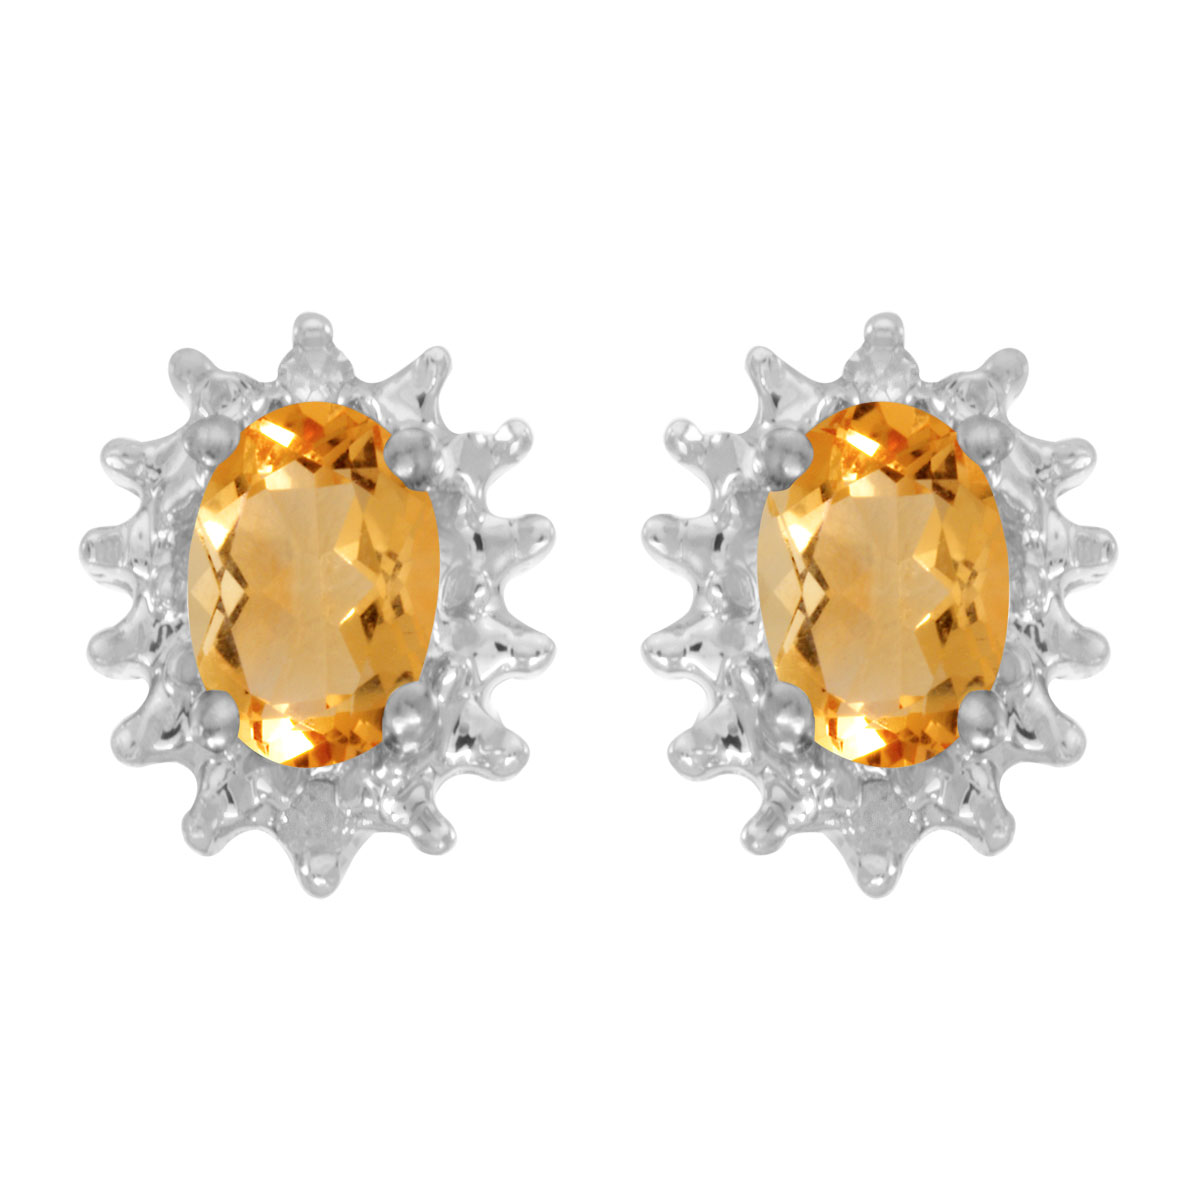 These 14k white gold oval citrine and diamond earrings feature 6x4 mm genuine natural citrines wi...